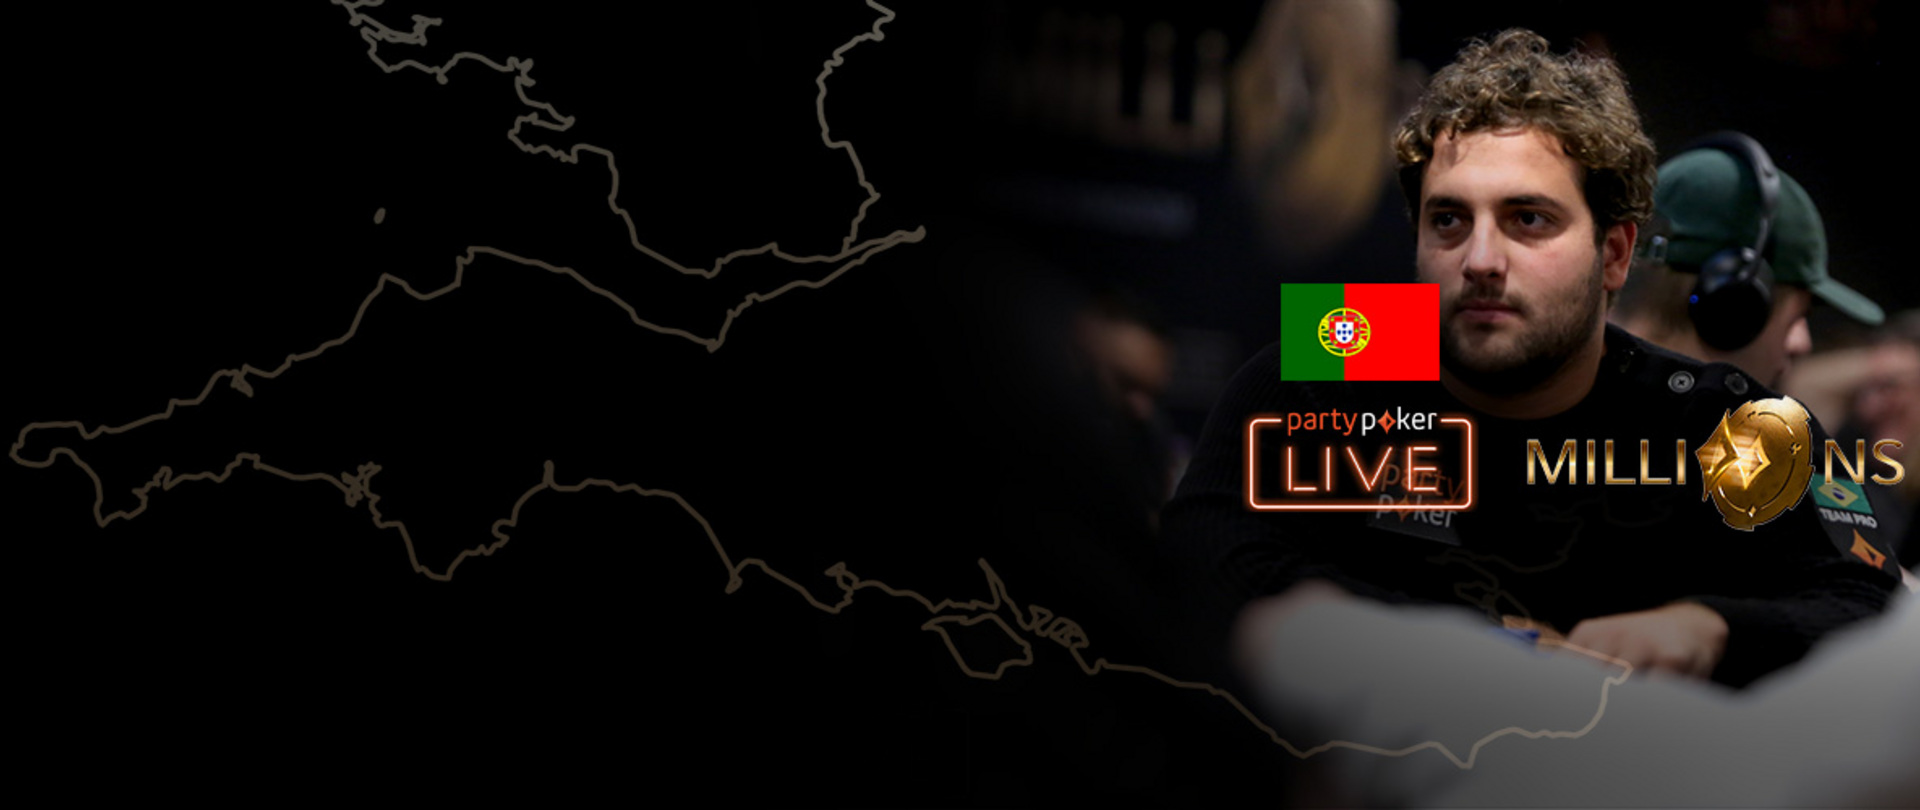 partypoker MILLIONS UK 2020 | $10K Main Event | Day 3 (Portuguese)